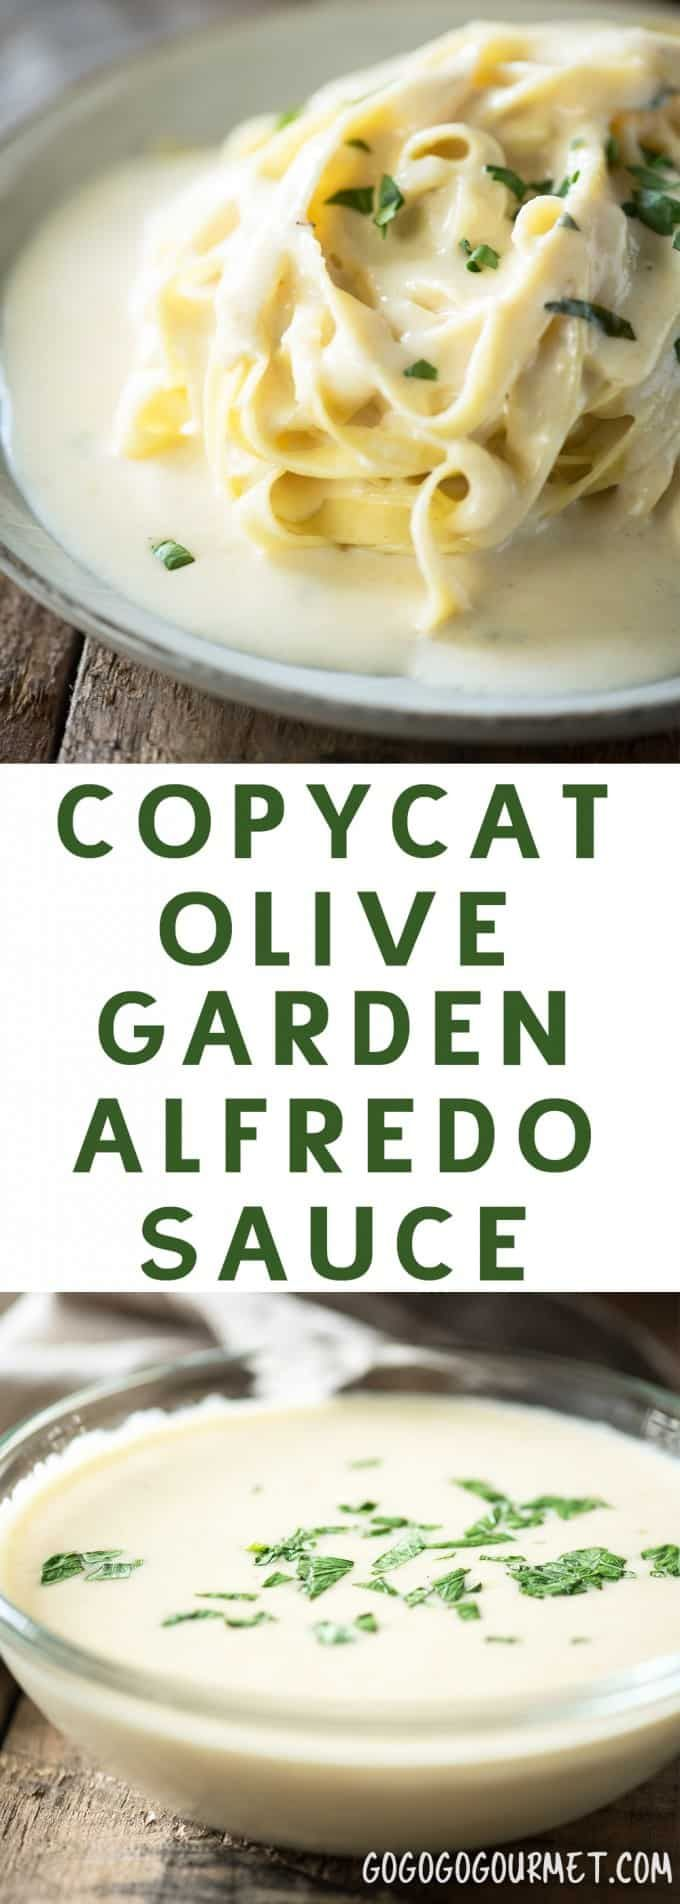 This copycat olive garden alfredo sauce is a fast and easy - Olive garden alfredo recipe copycat ...